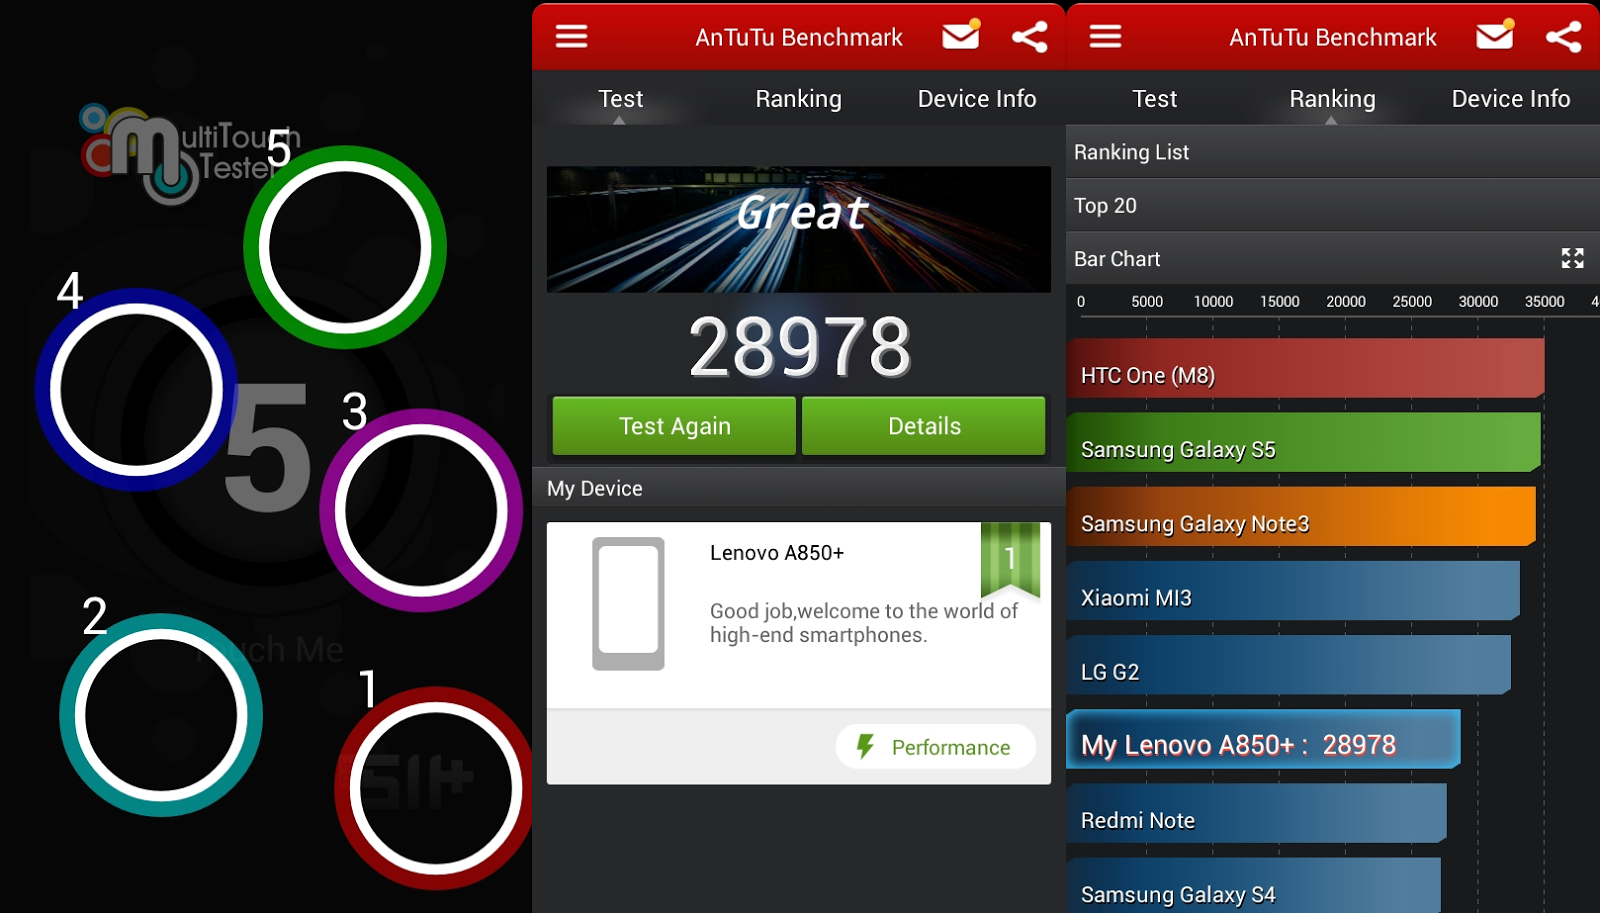 Greview Lenovo A850 Performance And Endurance Geekschicksten 4gb Putih Only 1gb Ram Internal Storage Here To Cut Down On Cost This Hardware Setup Seems Work Its Advantage Consuming Less Energy For